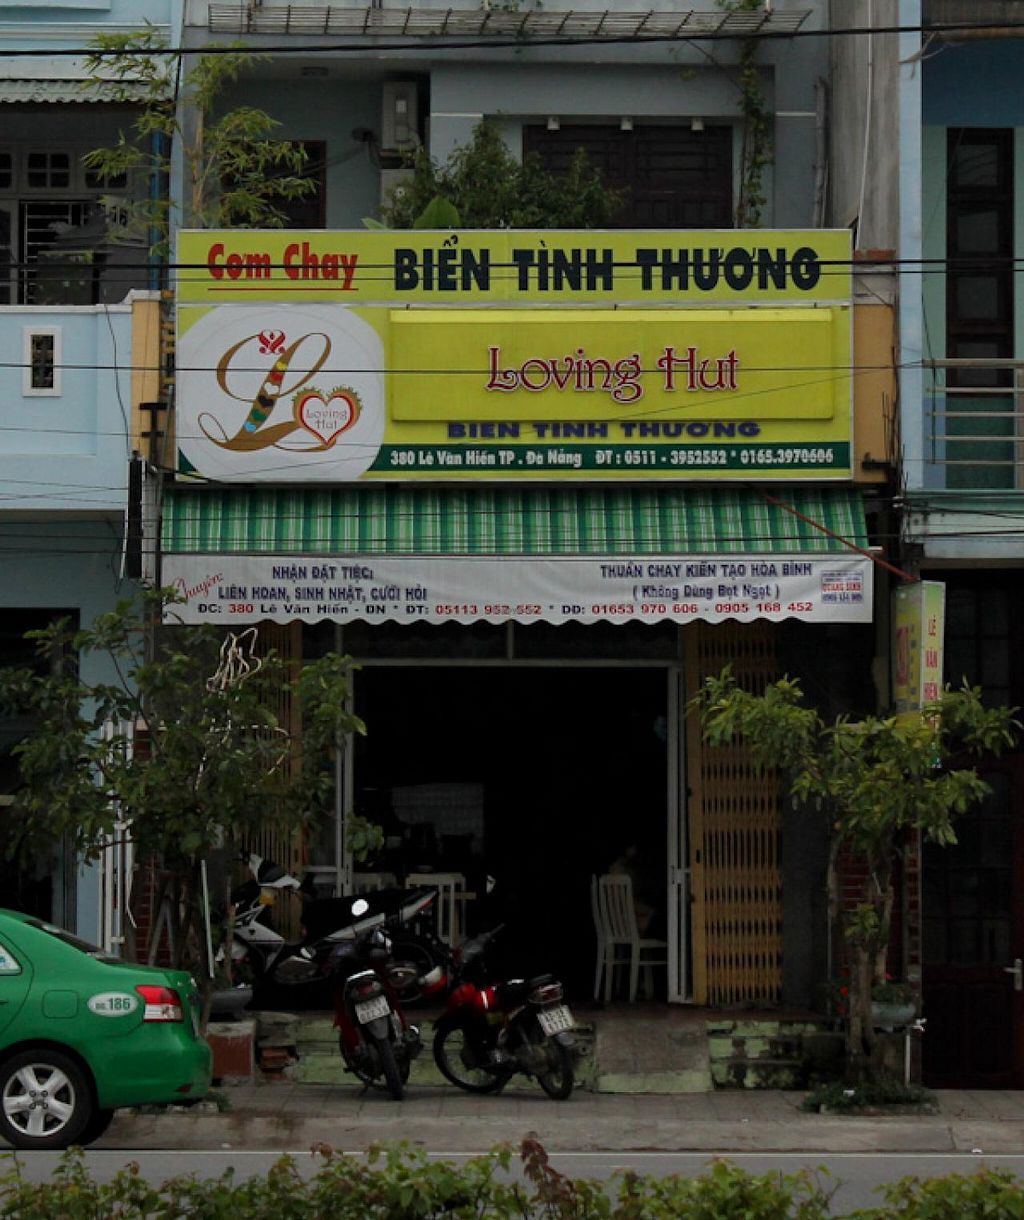 """Photo of Loving Hut - Bien Tinh Thuong  by <a href=""""/members/profile/Ranks42"""">Ranks42</a> <br/>View of restaurant from east side of Le Van Hien street <br/> January 11, 2014  - <a href='/contact/abuse/image/36503/62313'>Report</a>"""